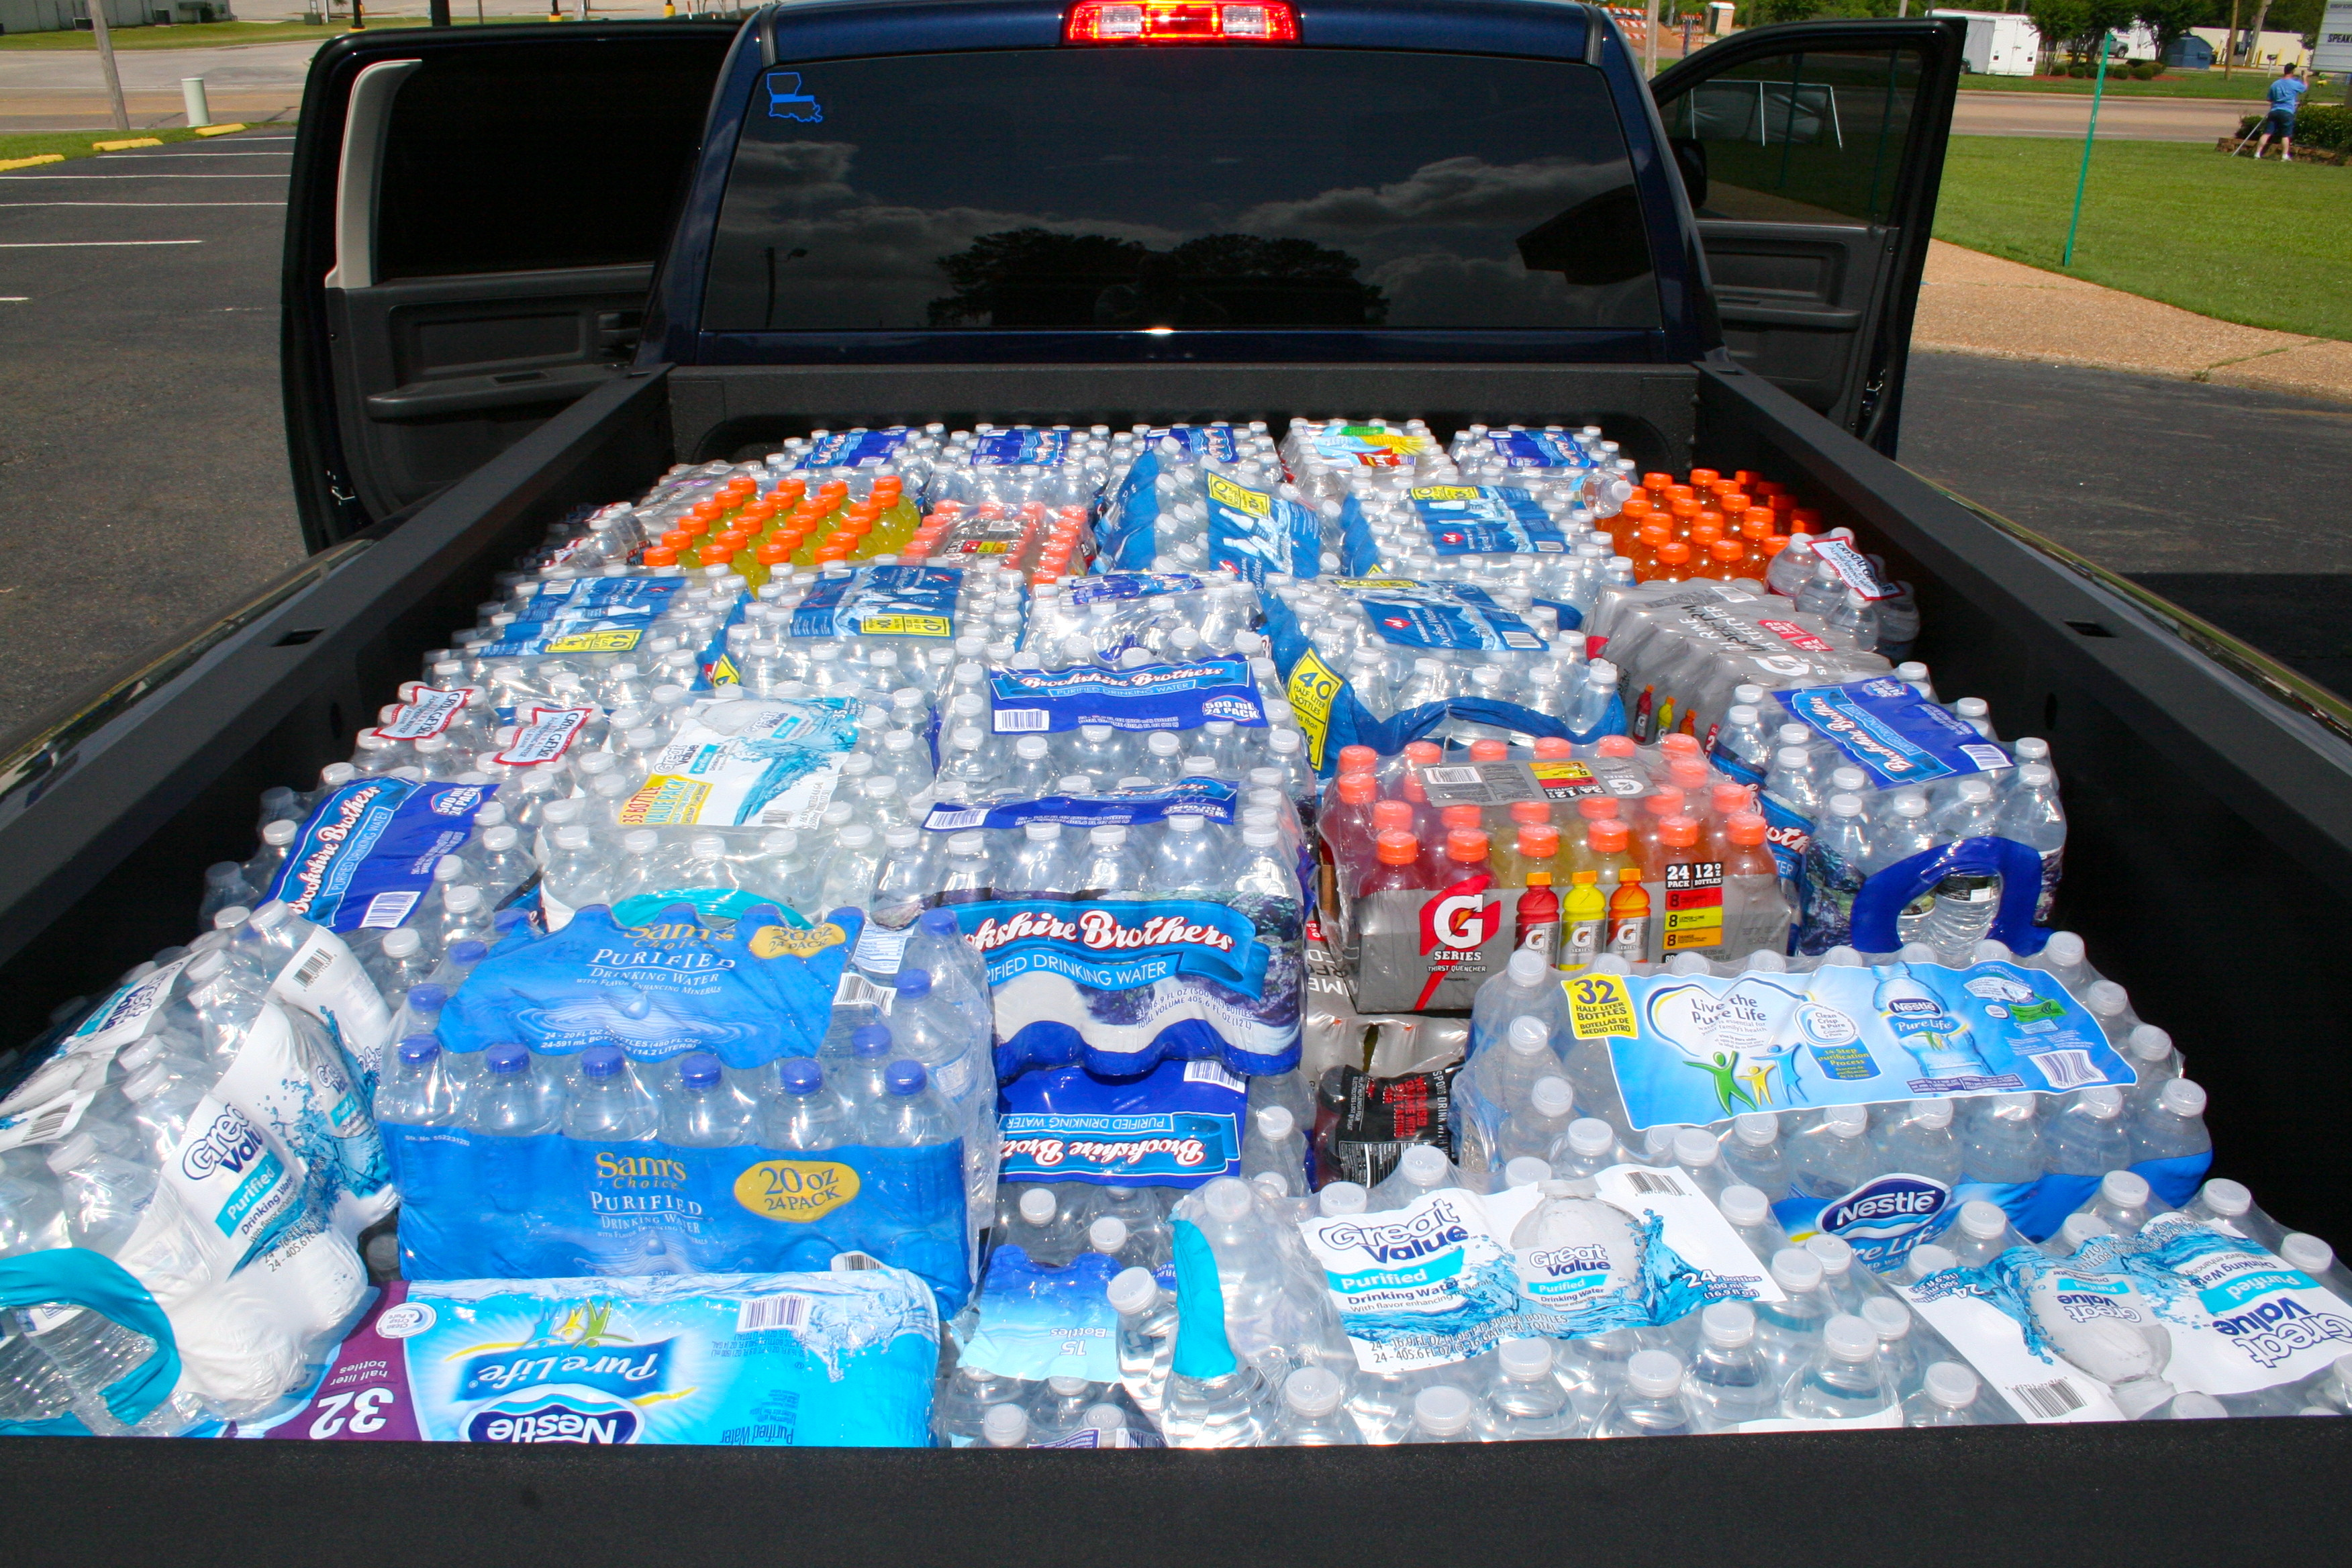 Water and gatorade in the back of truck